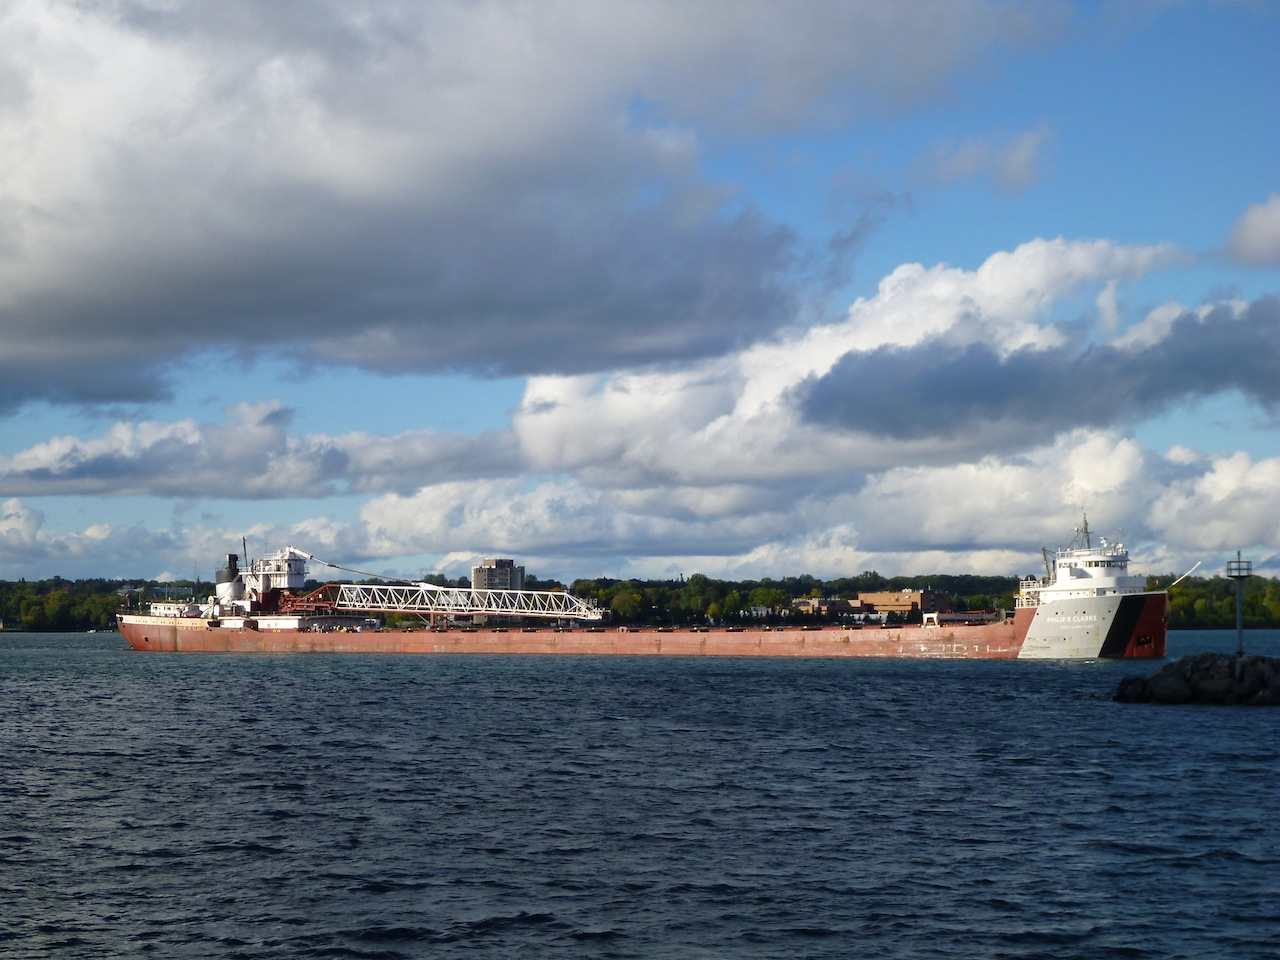 A Freighter Going By